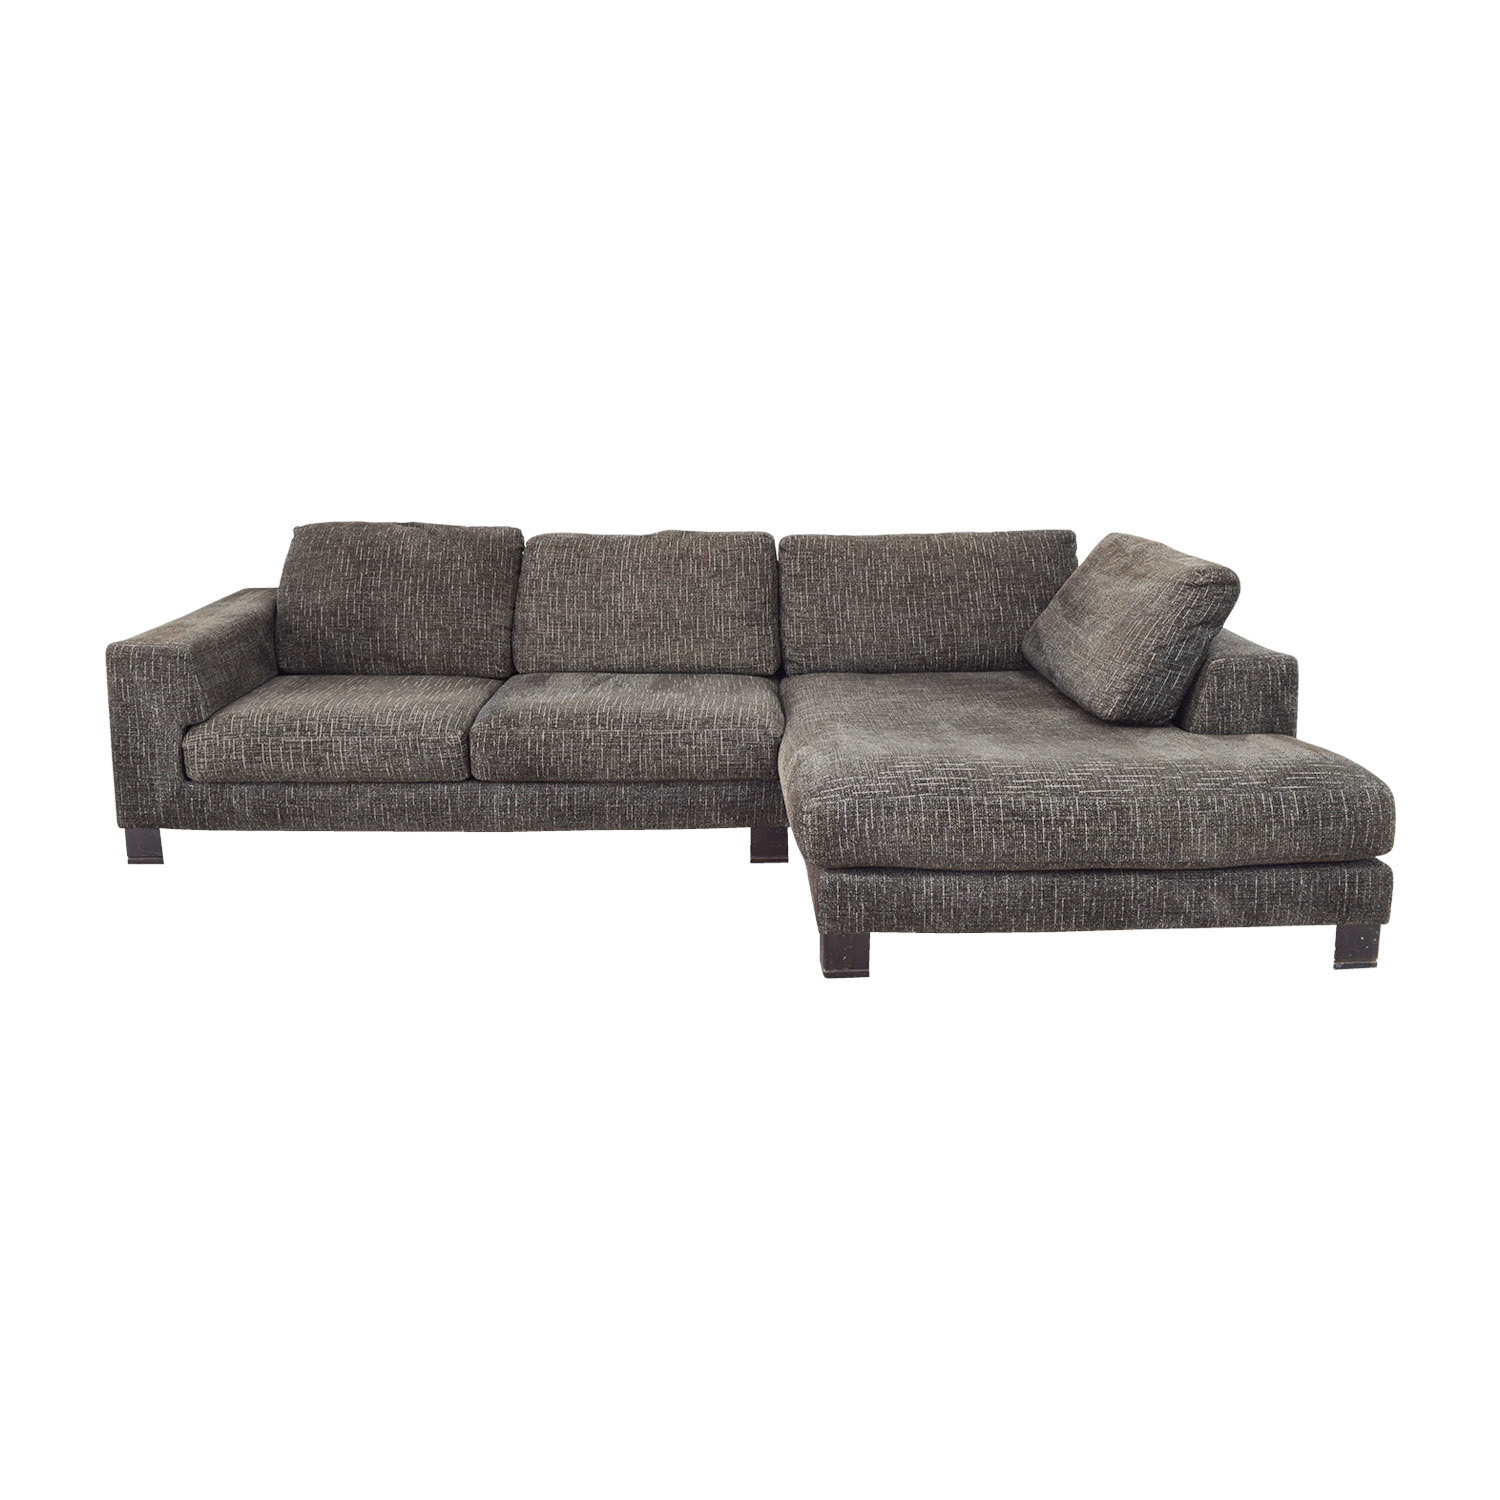 Cool 74 Off Grey Tweed Right Arm Chaise Sectional Sofas Pabps2019 Chair Design Images Pabps2019Com